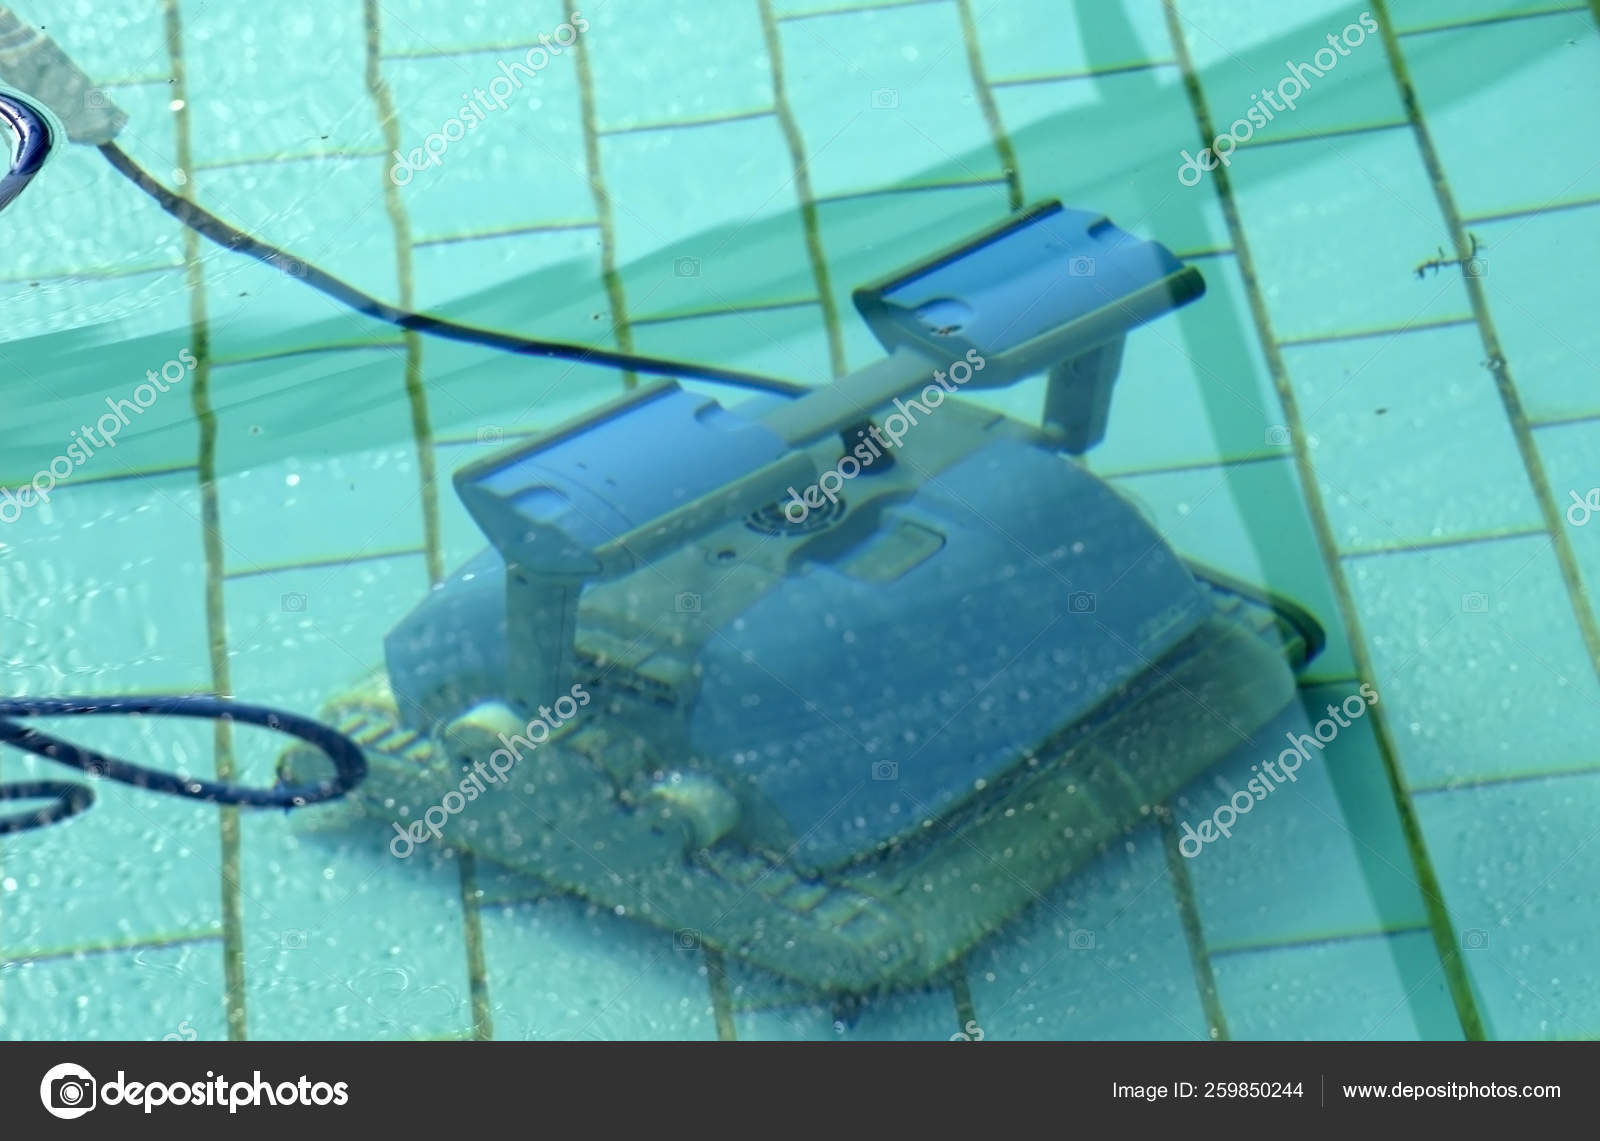 Photograph Robot Cleaning Swimming Pool — Stock Photo ...